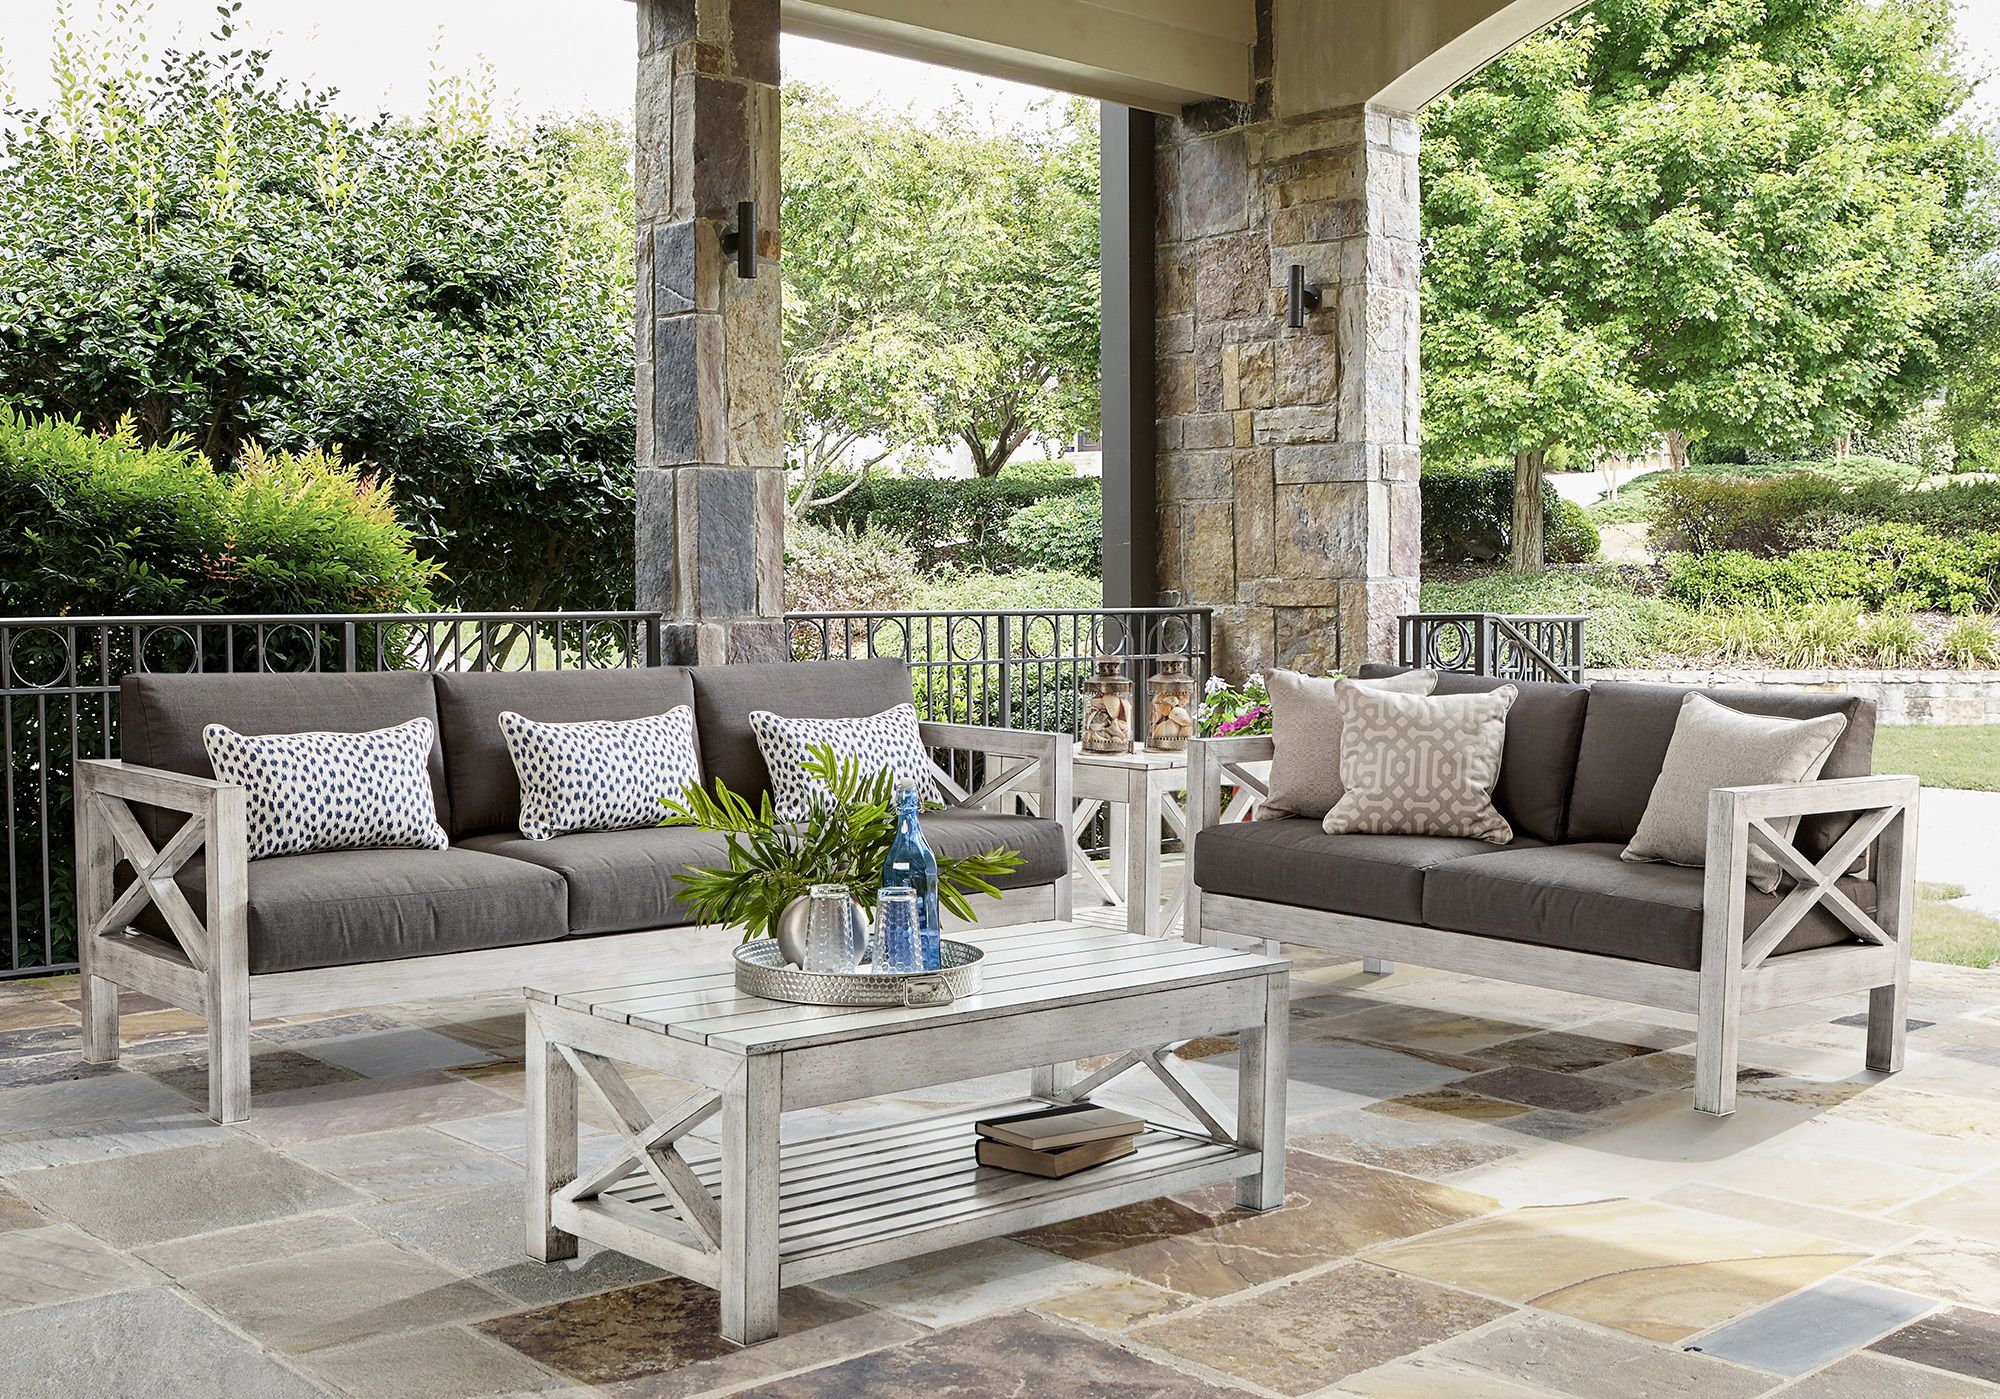 Superb Patio Furniture Showroom Outdoor Seating Dining At Factory Interior Design Ideas Inesswwsoteloinfo